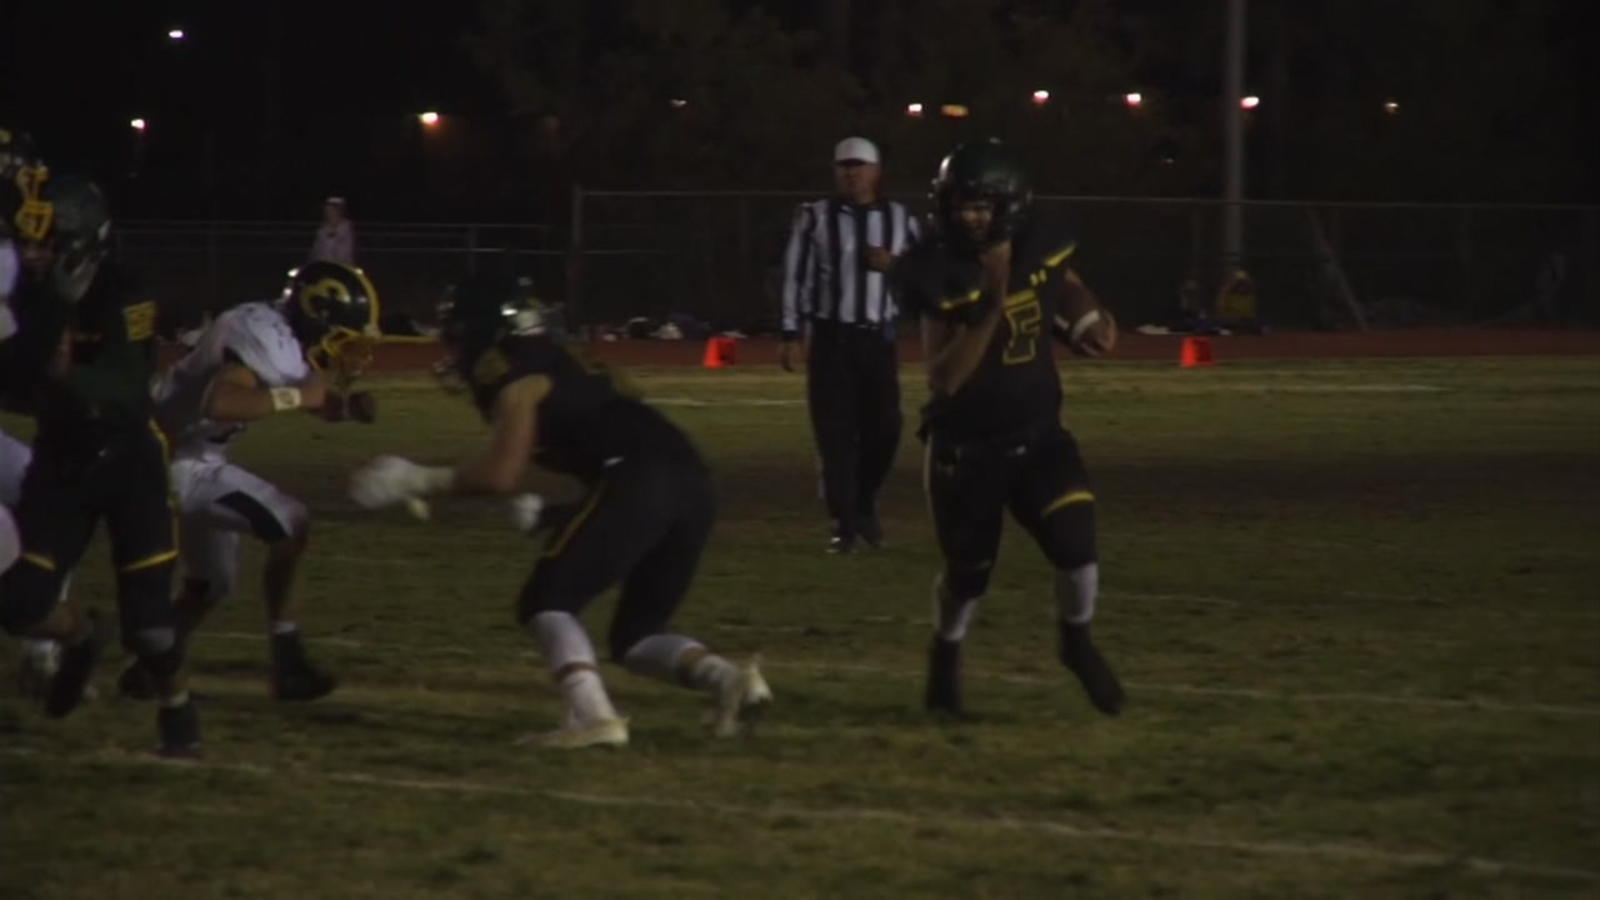 Rising from the ashes, Paradise football team remains undefeated and advances in playoffs - KGO-TV